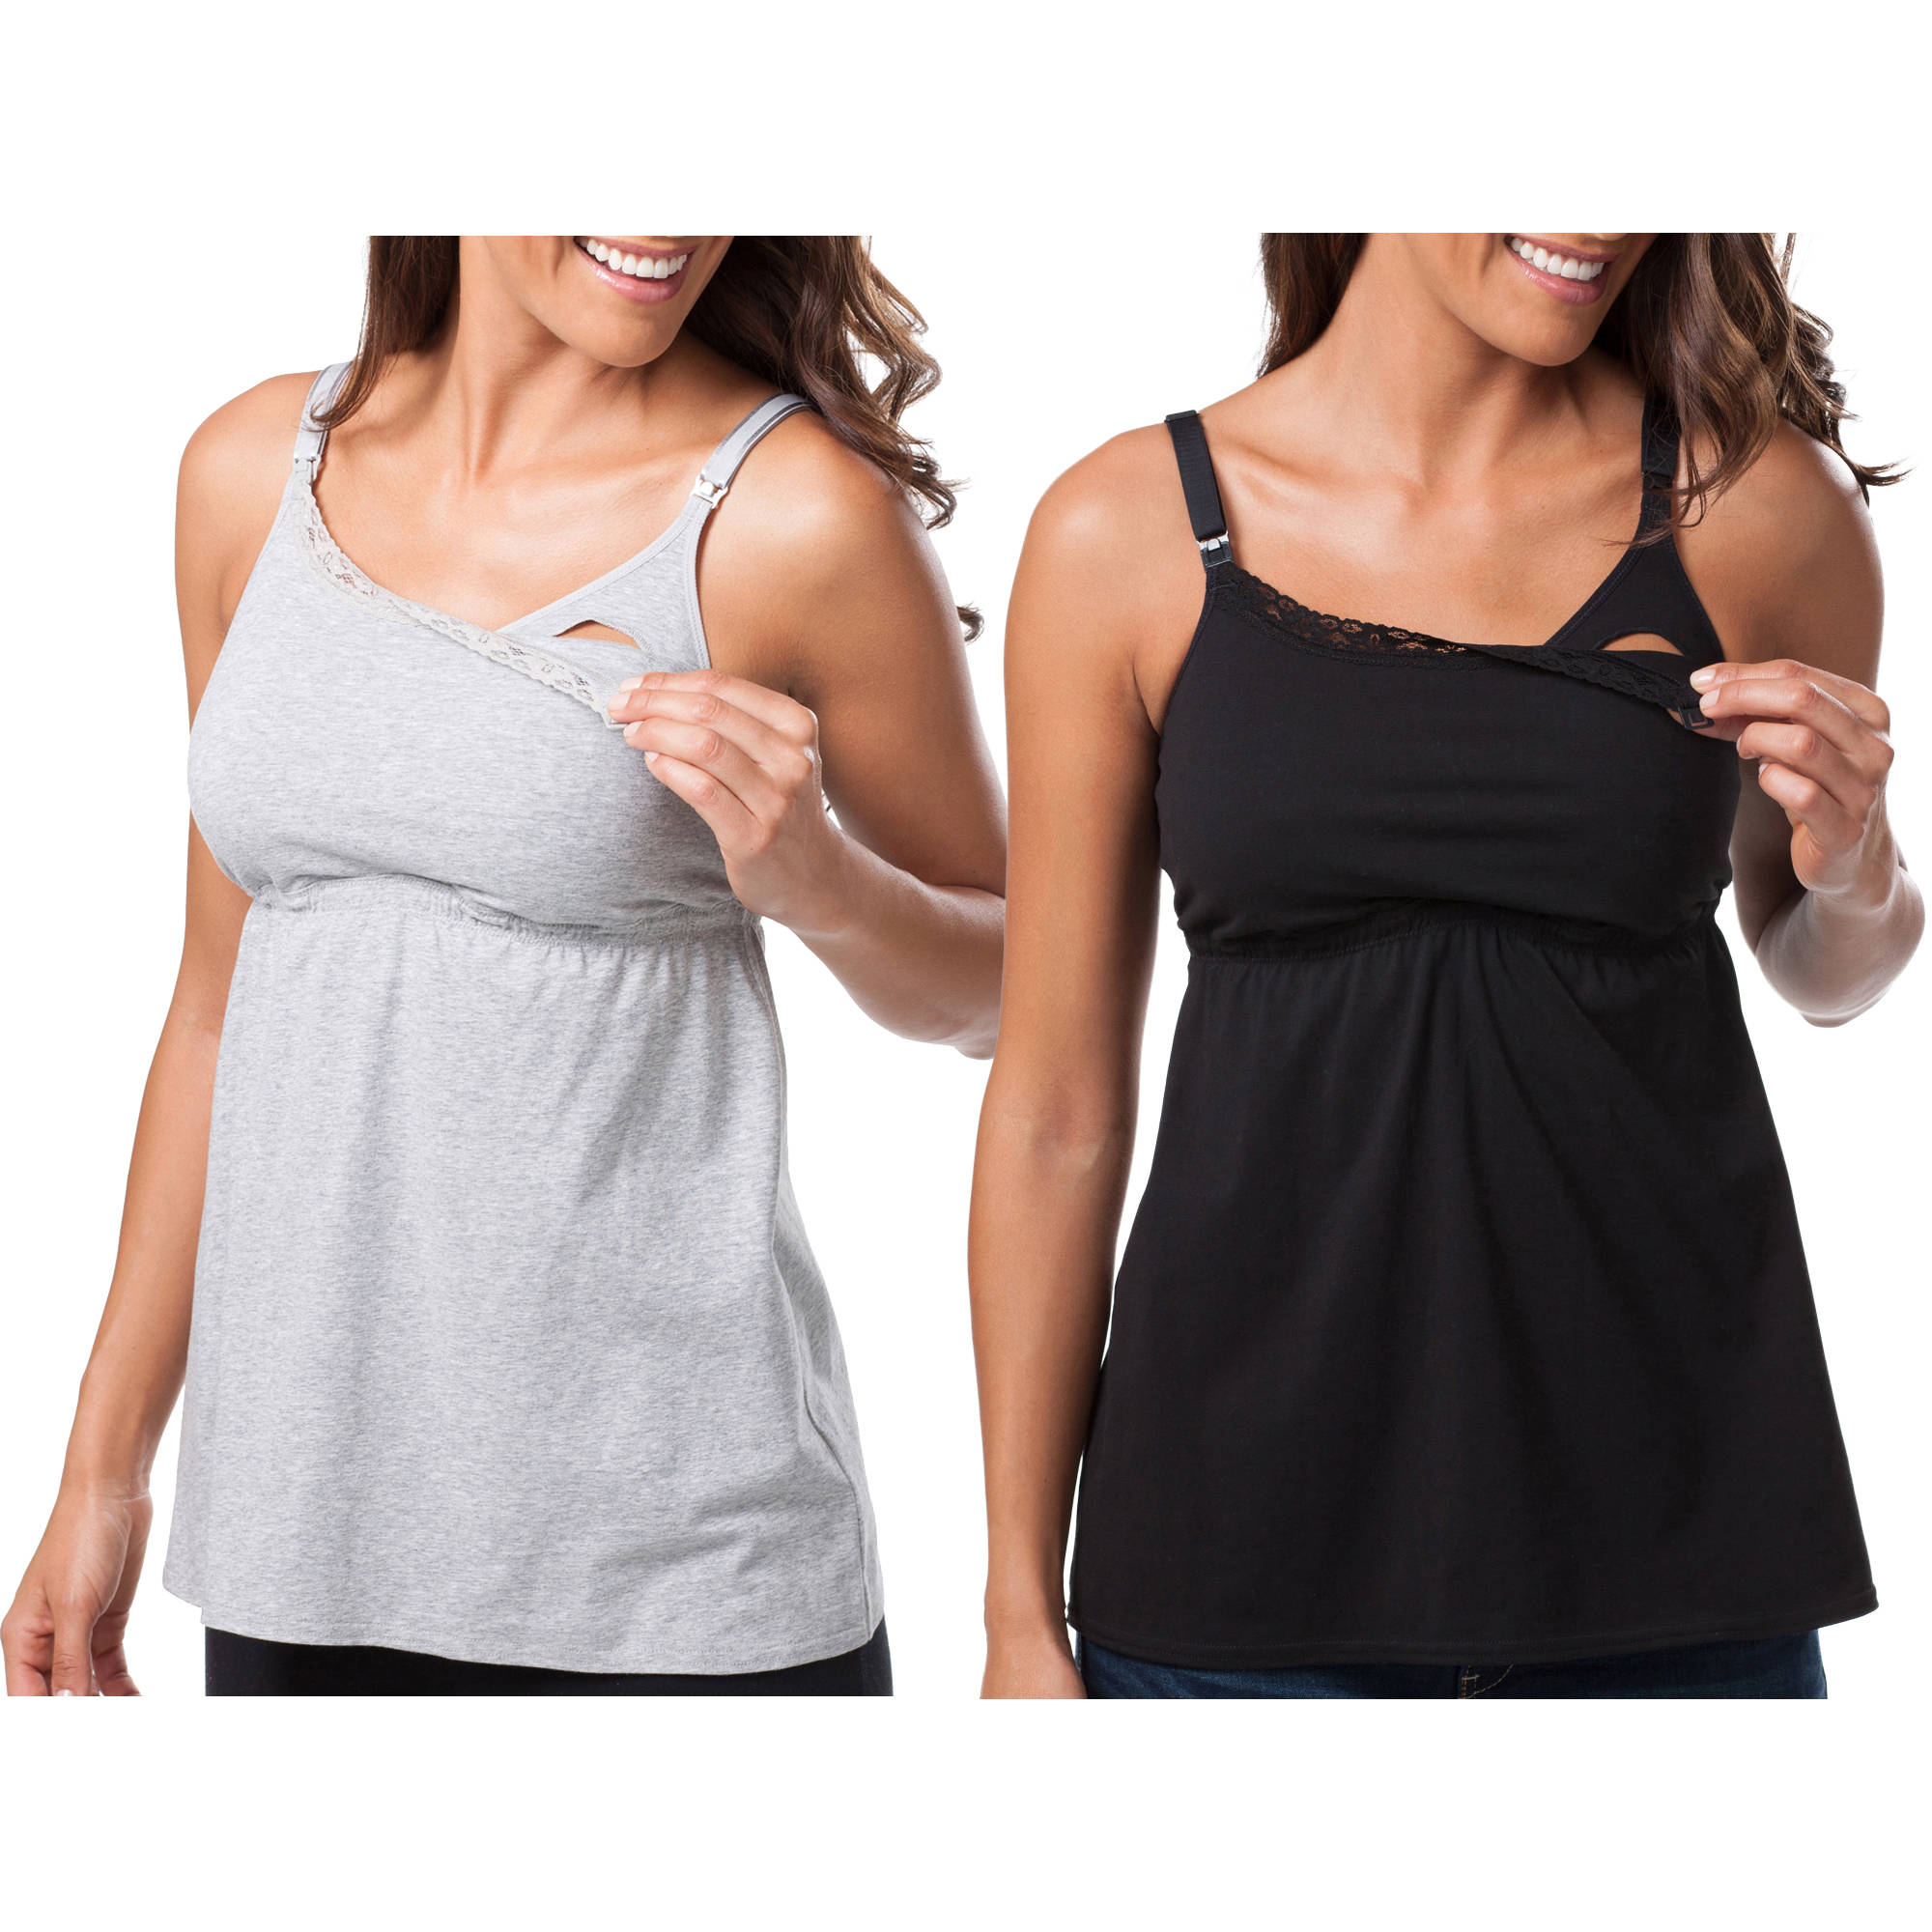 Loving Moments by Leading Lady Maternity Babydoll Nursing Tank, 2-Pack